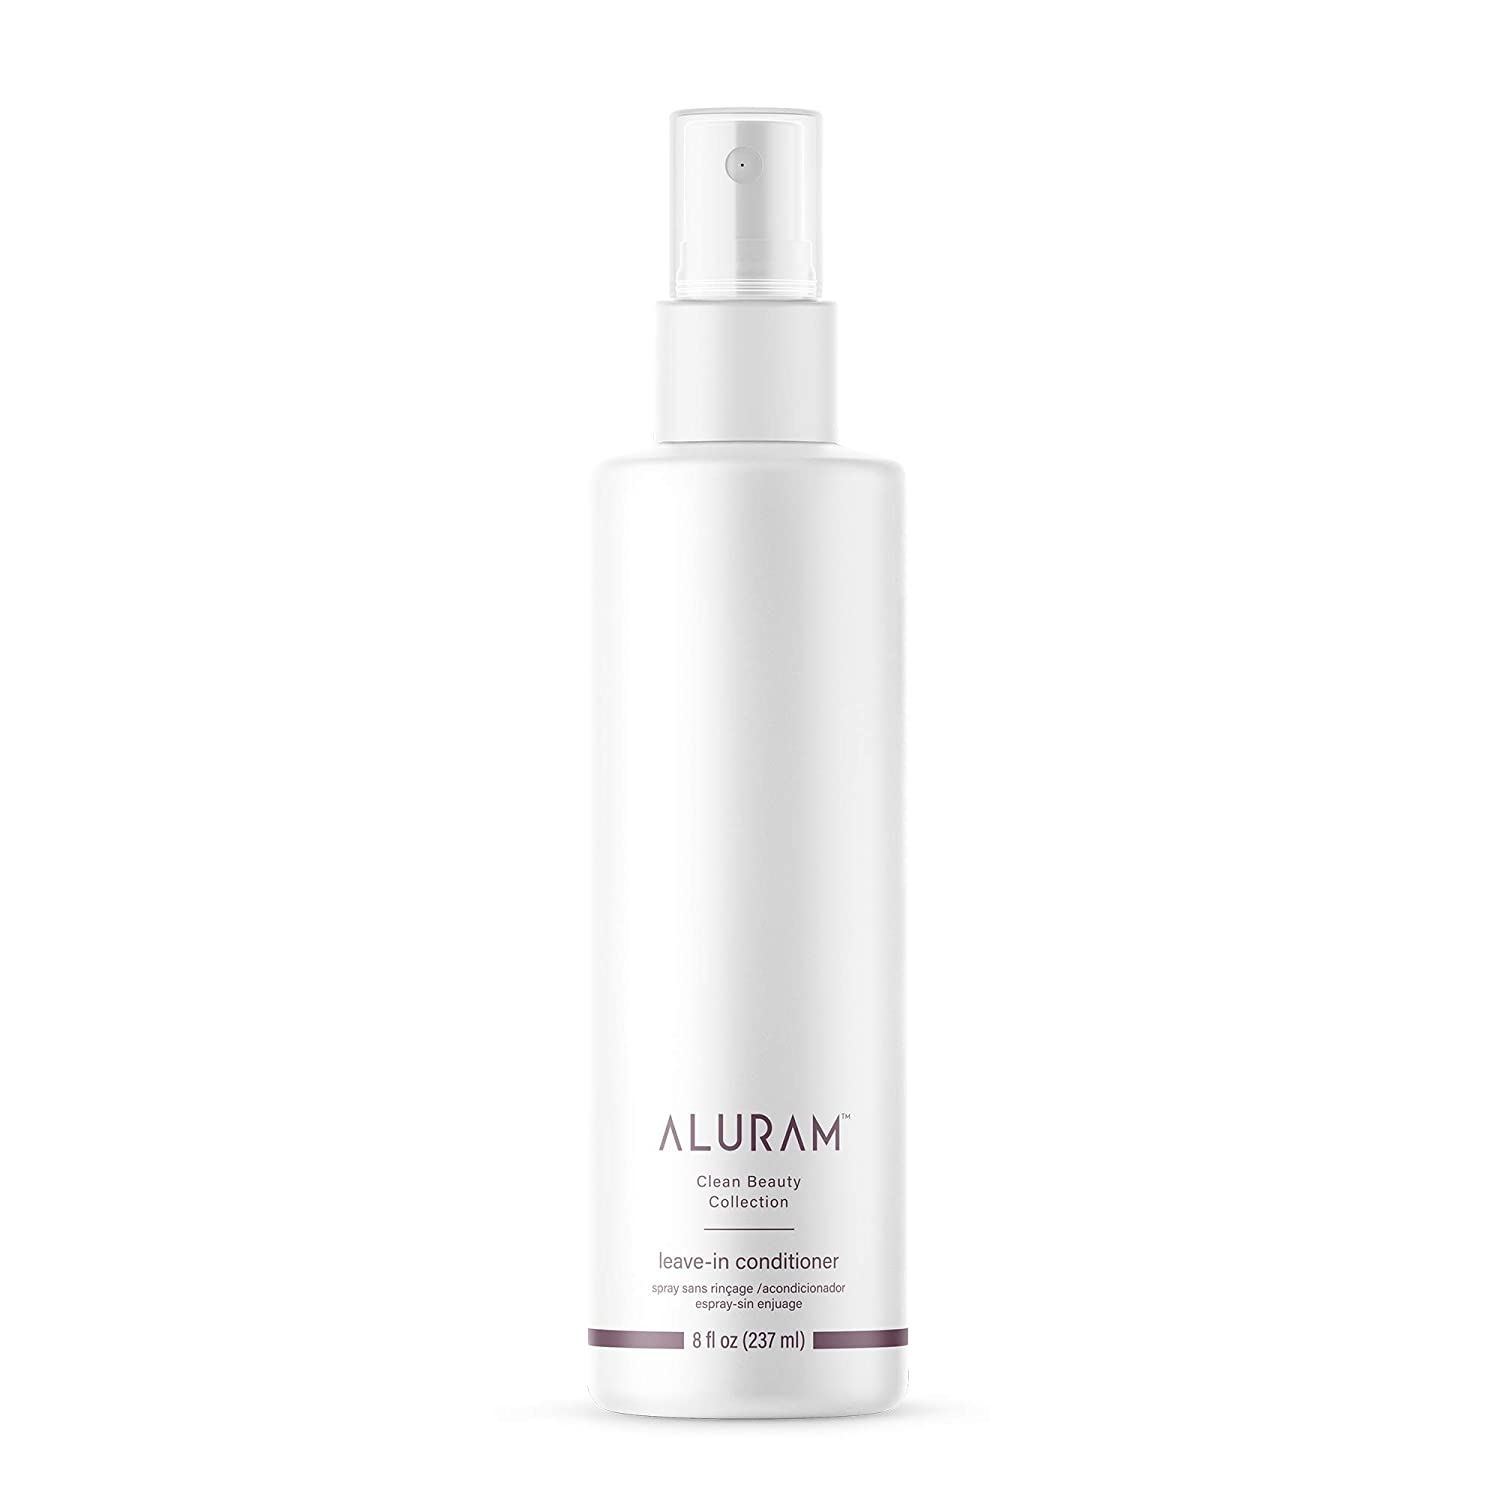 aluram coconut water based leave in conditioner